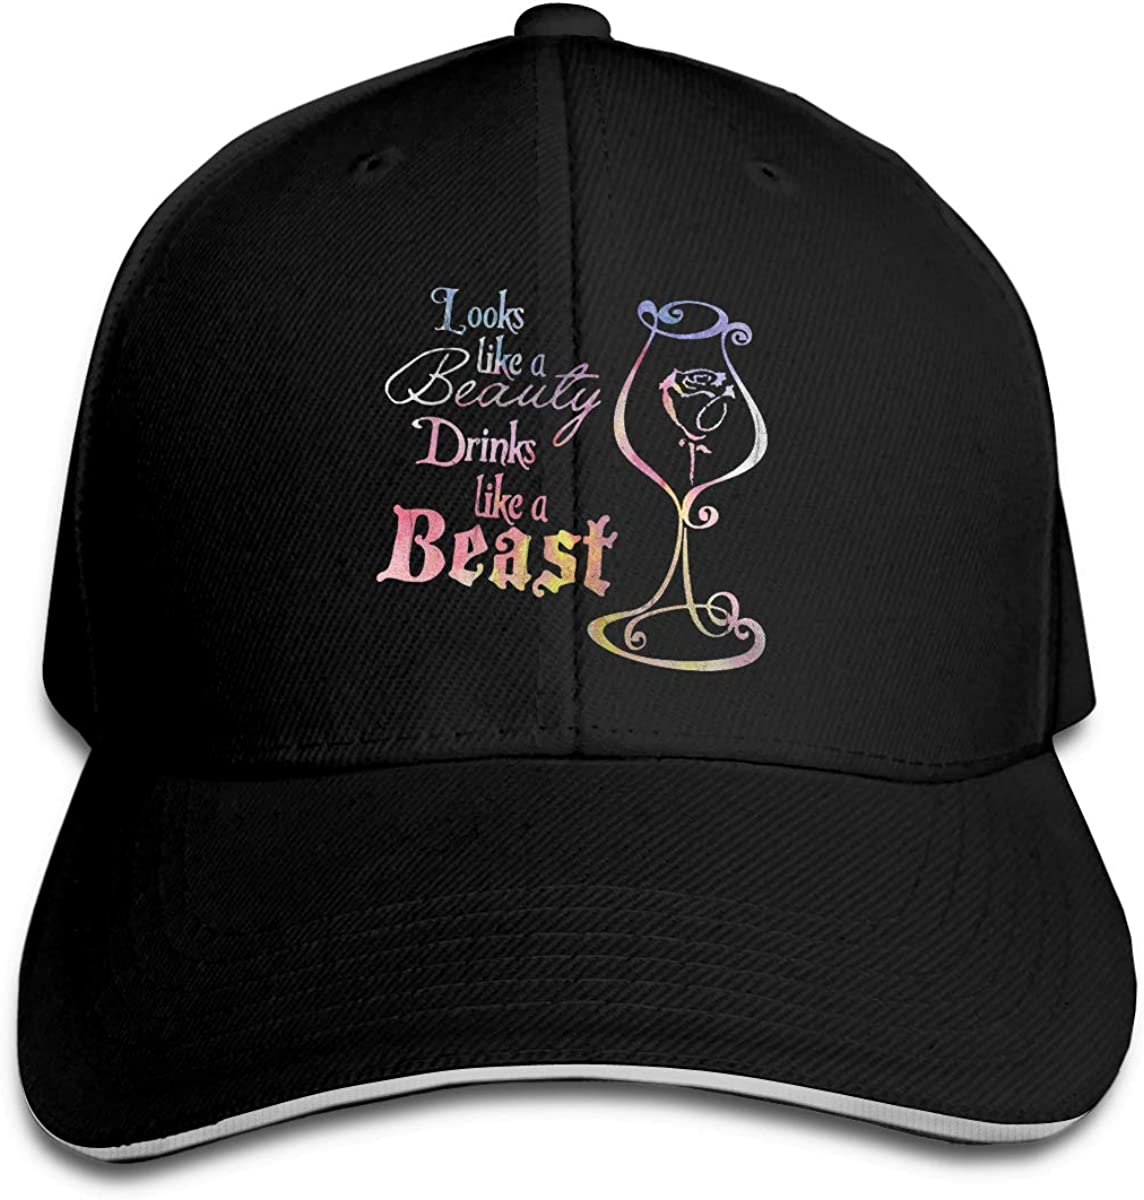 Looks Like A Beauty Drink Like A Beast Classic Adjustable Cotton Baseball Caps Trucker Driver Hat Outdoor Cap Black